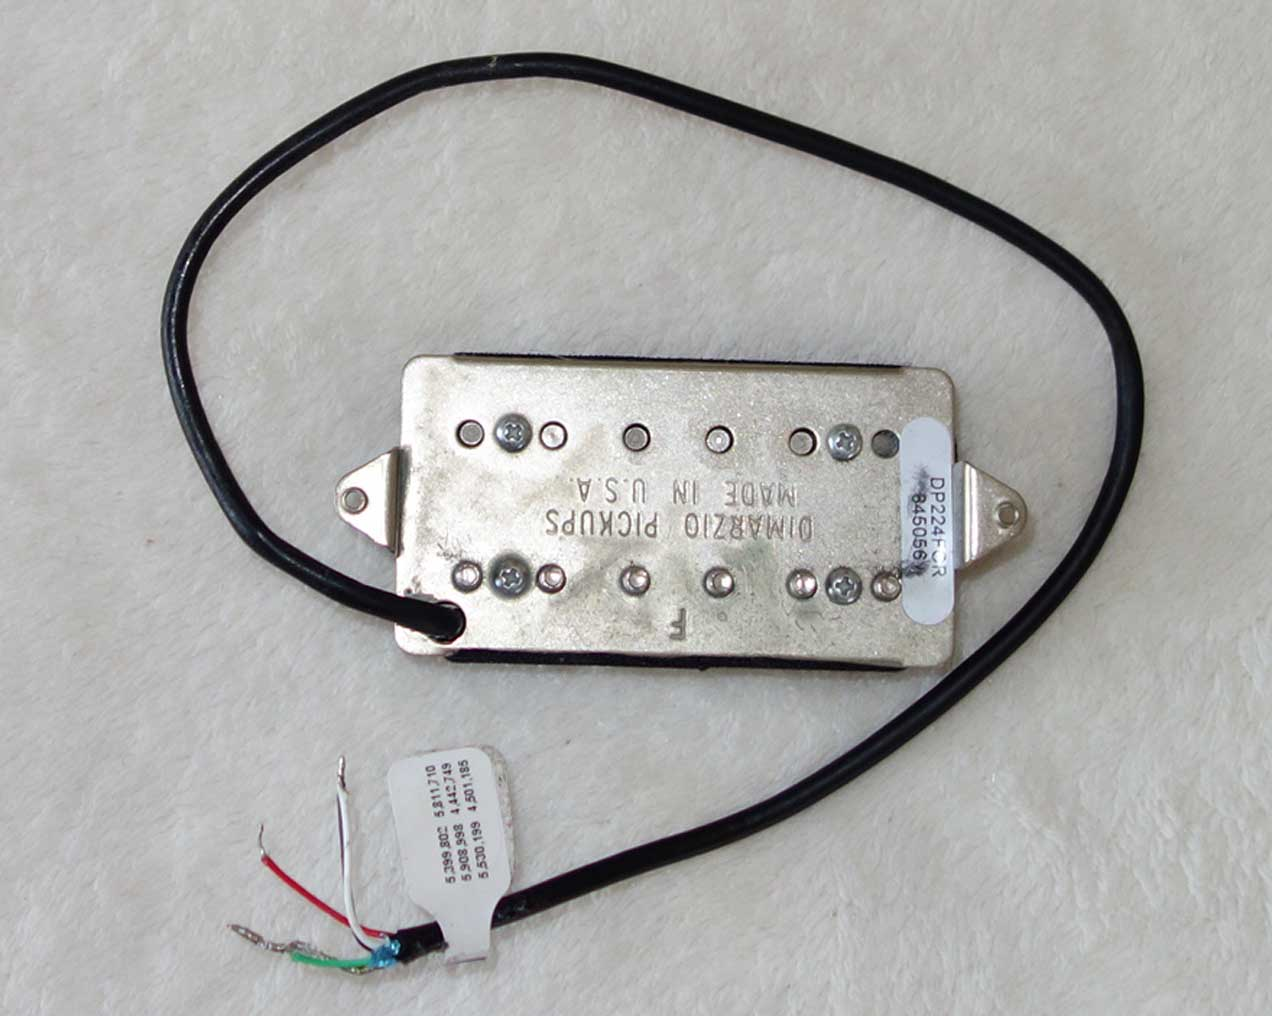 DiMarzio AT-1 Andy Timmons Humbucking PUP 17K ? w/4-Conductor, F Spacing, Double Cream Covers, DP224